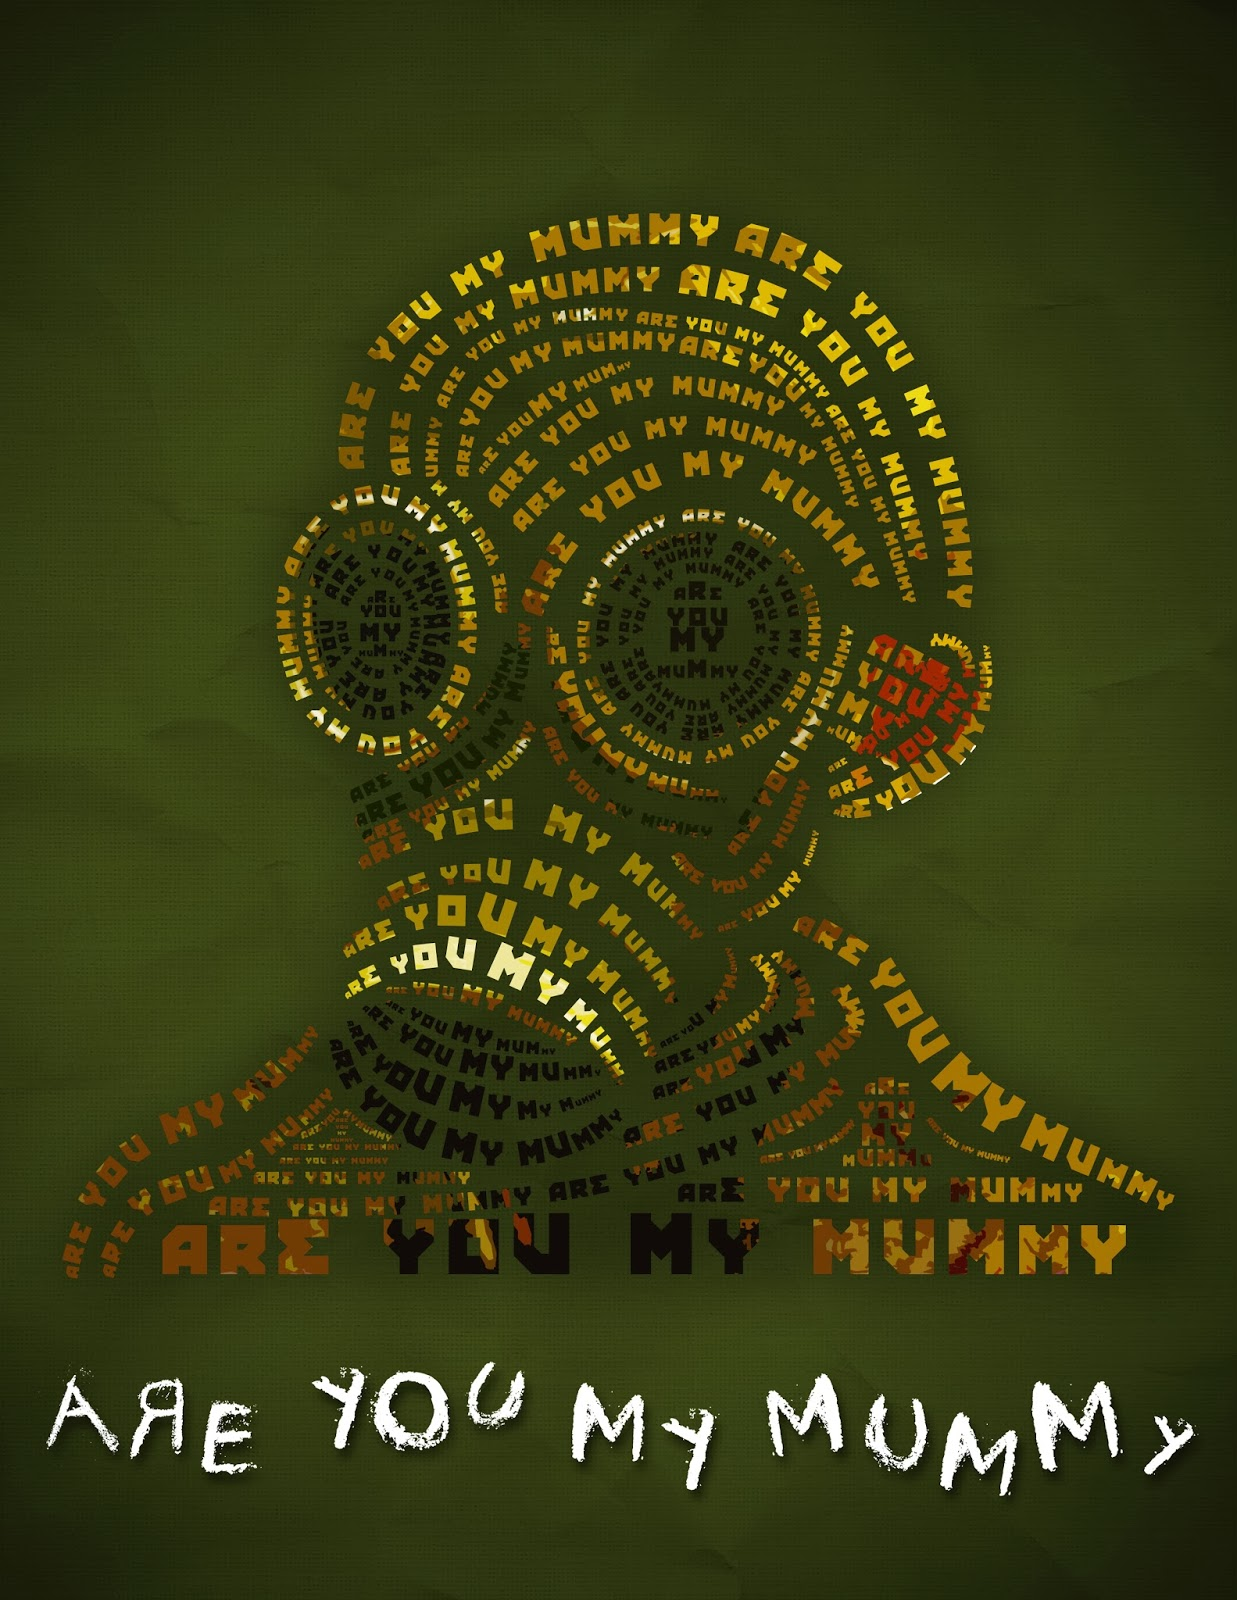 Are You My Mummy Doctor Who PC Android iPhone and iPad Wallpapers 1237x1600